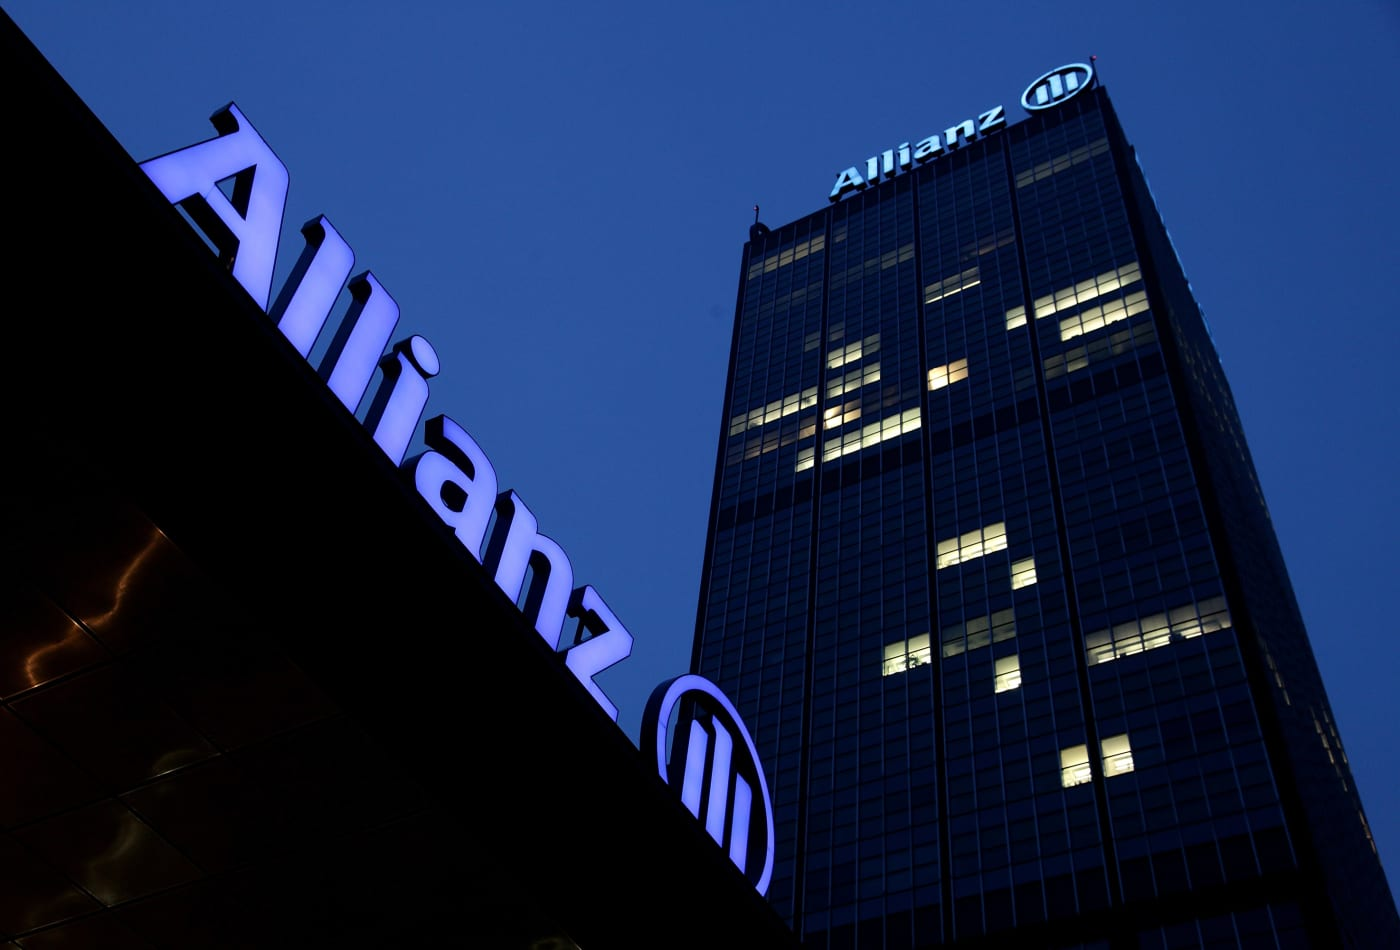 Pimco-owner Allianz posts profit beat and hikes 2020 guidance